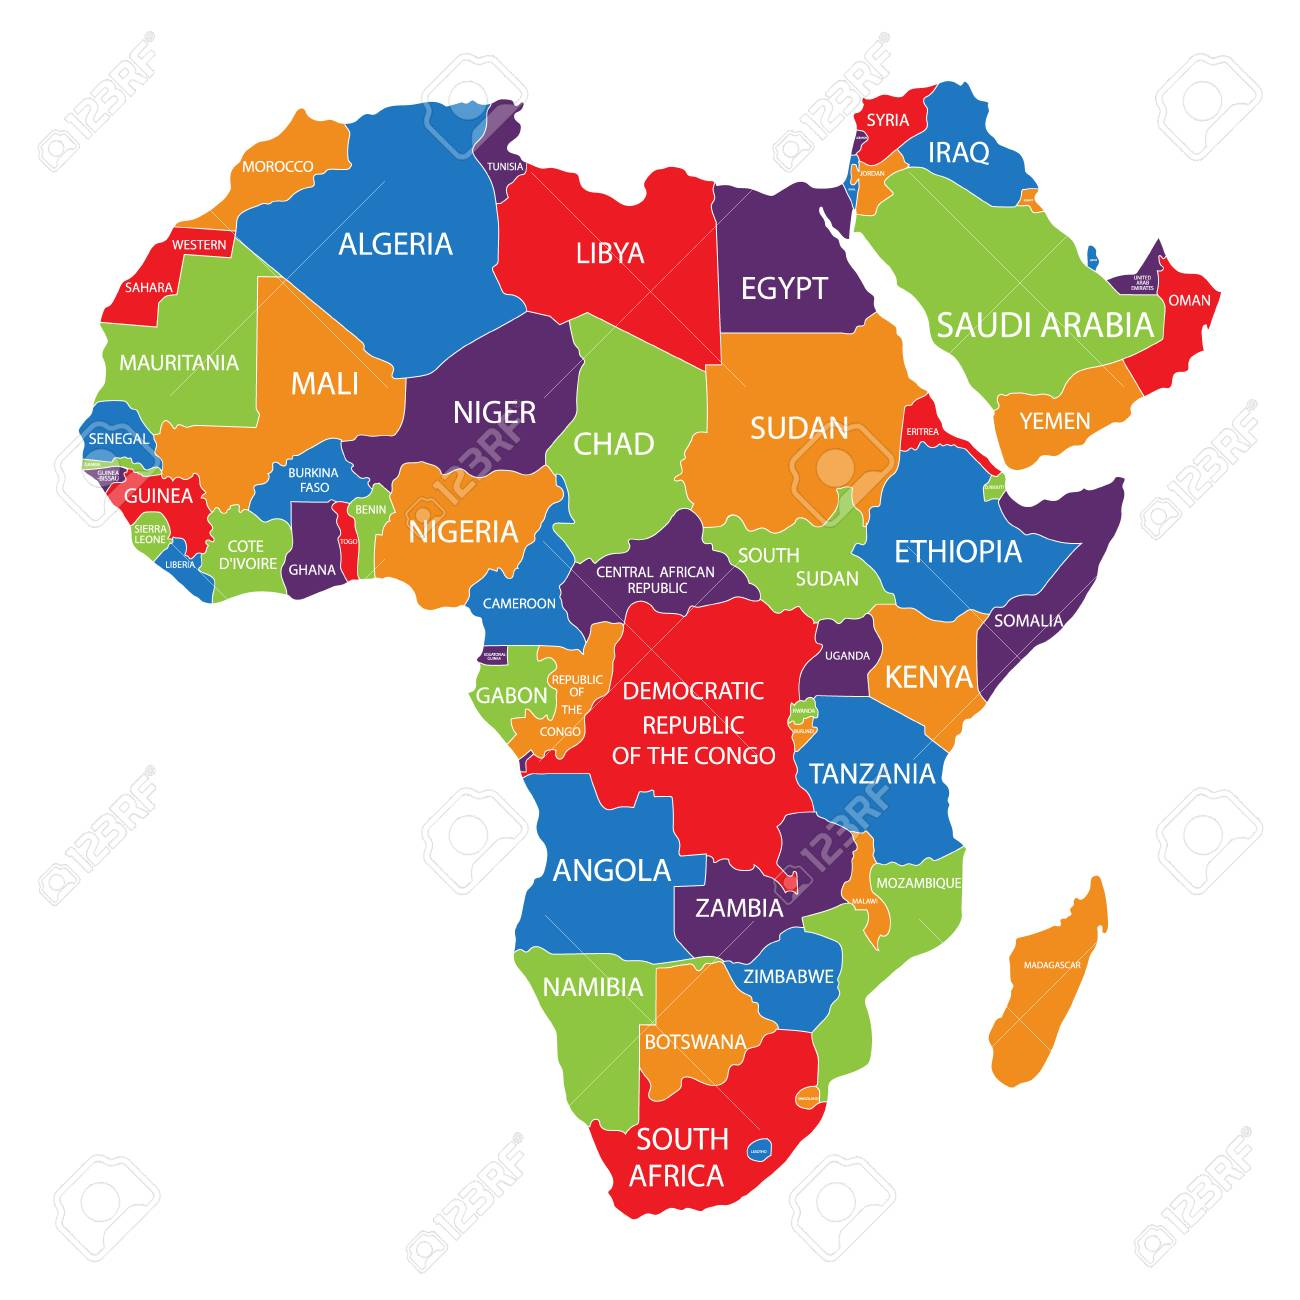 Africa Continent Map Raster Illustration Africa Map With Countries Names Isolated